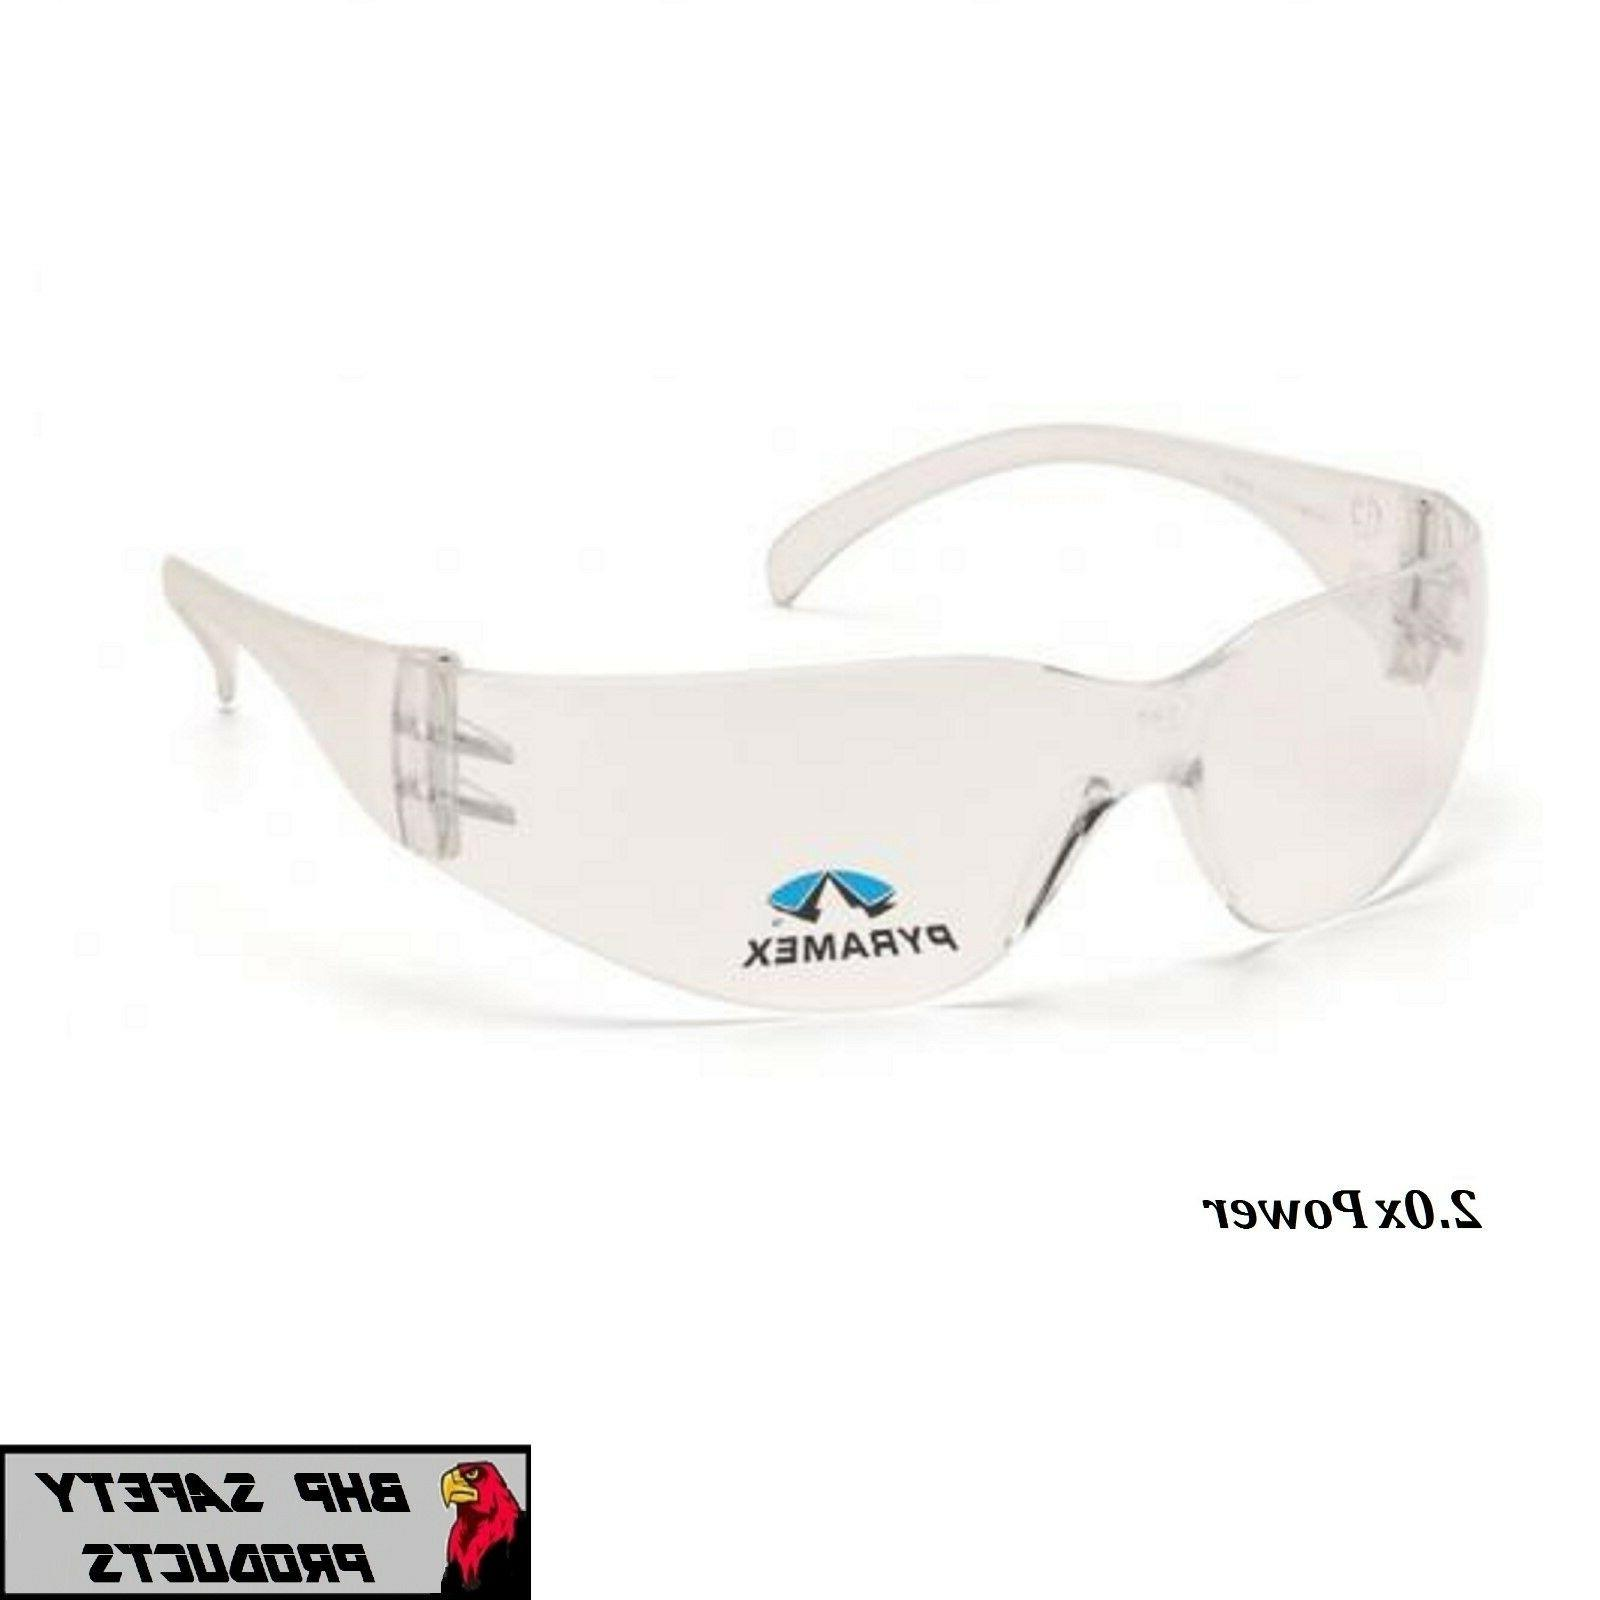 PYRAMEX INTRUDER READER SAFETY GLASSES CLEAR BIFOCAL 2.0 LEN